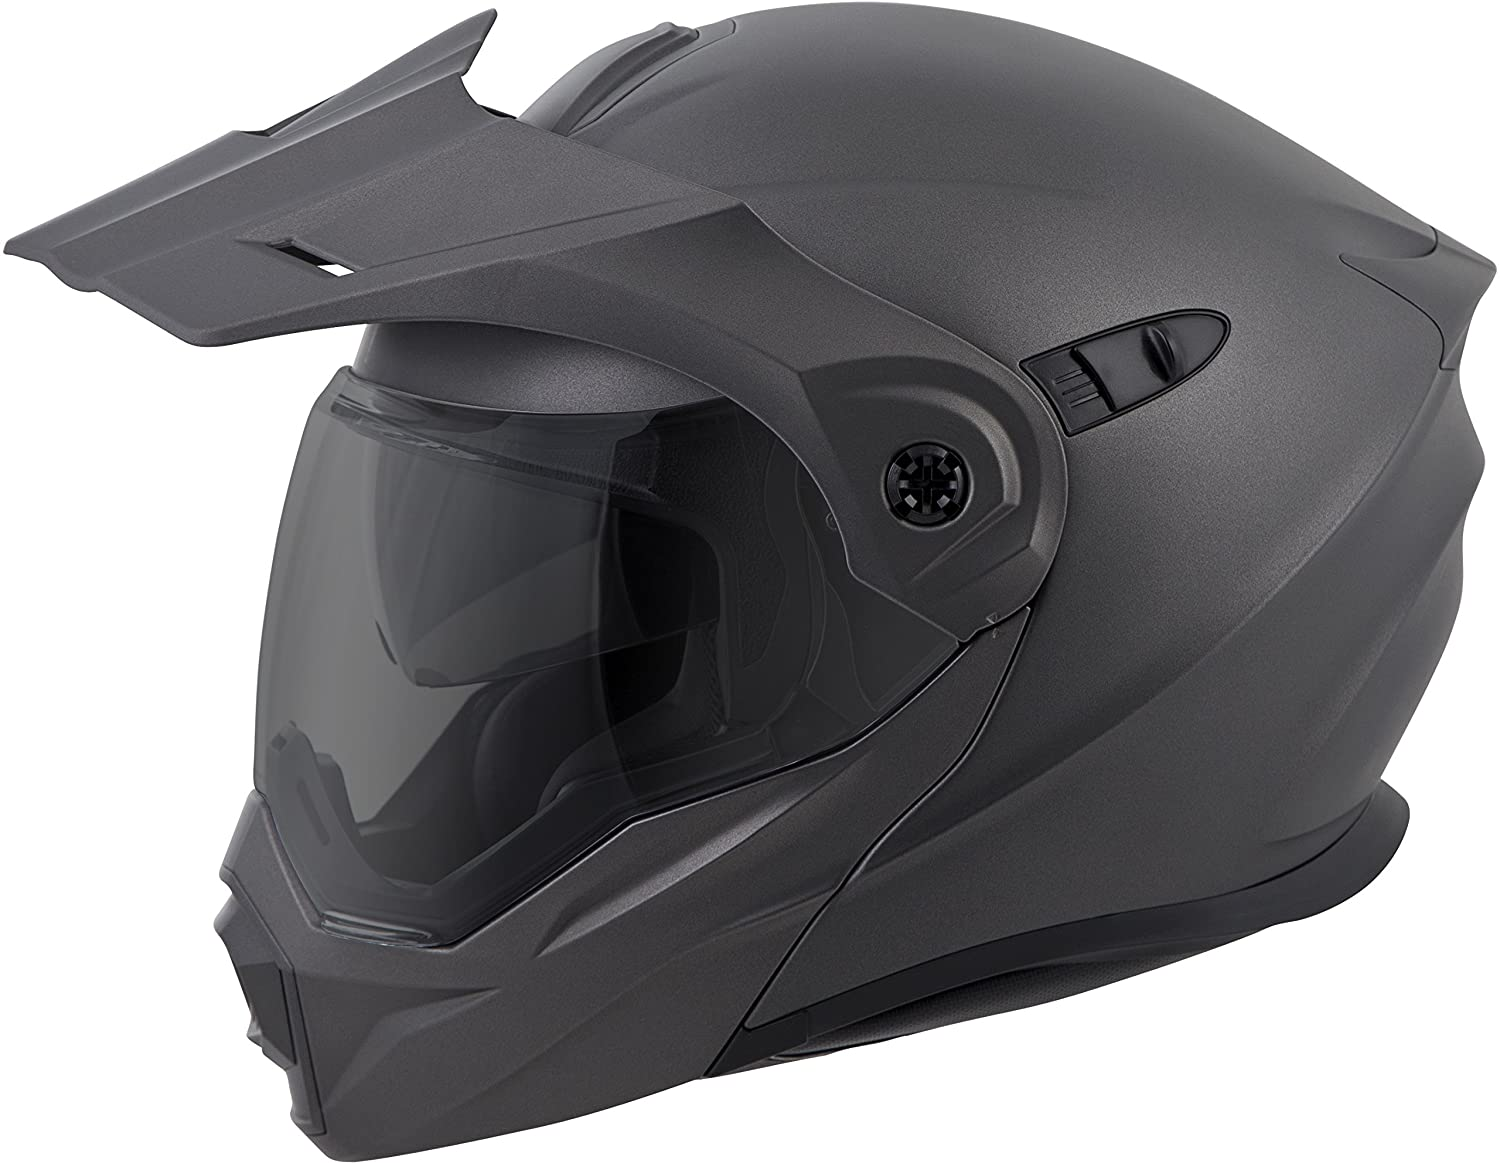 Amazon.com: ScorpionEXO Unisex-Adult Modular/Flip Up Adventure Touring Motorcycle Helmet (Anthracite, Medium) (EXO-AT950 Solid): Automotive